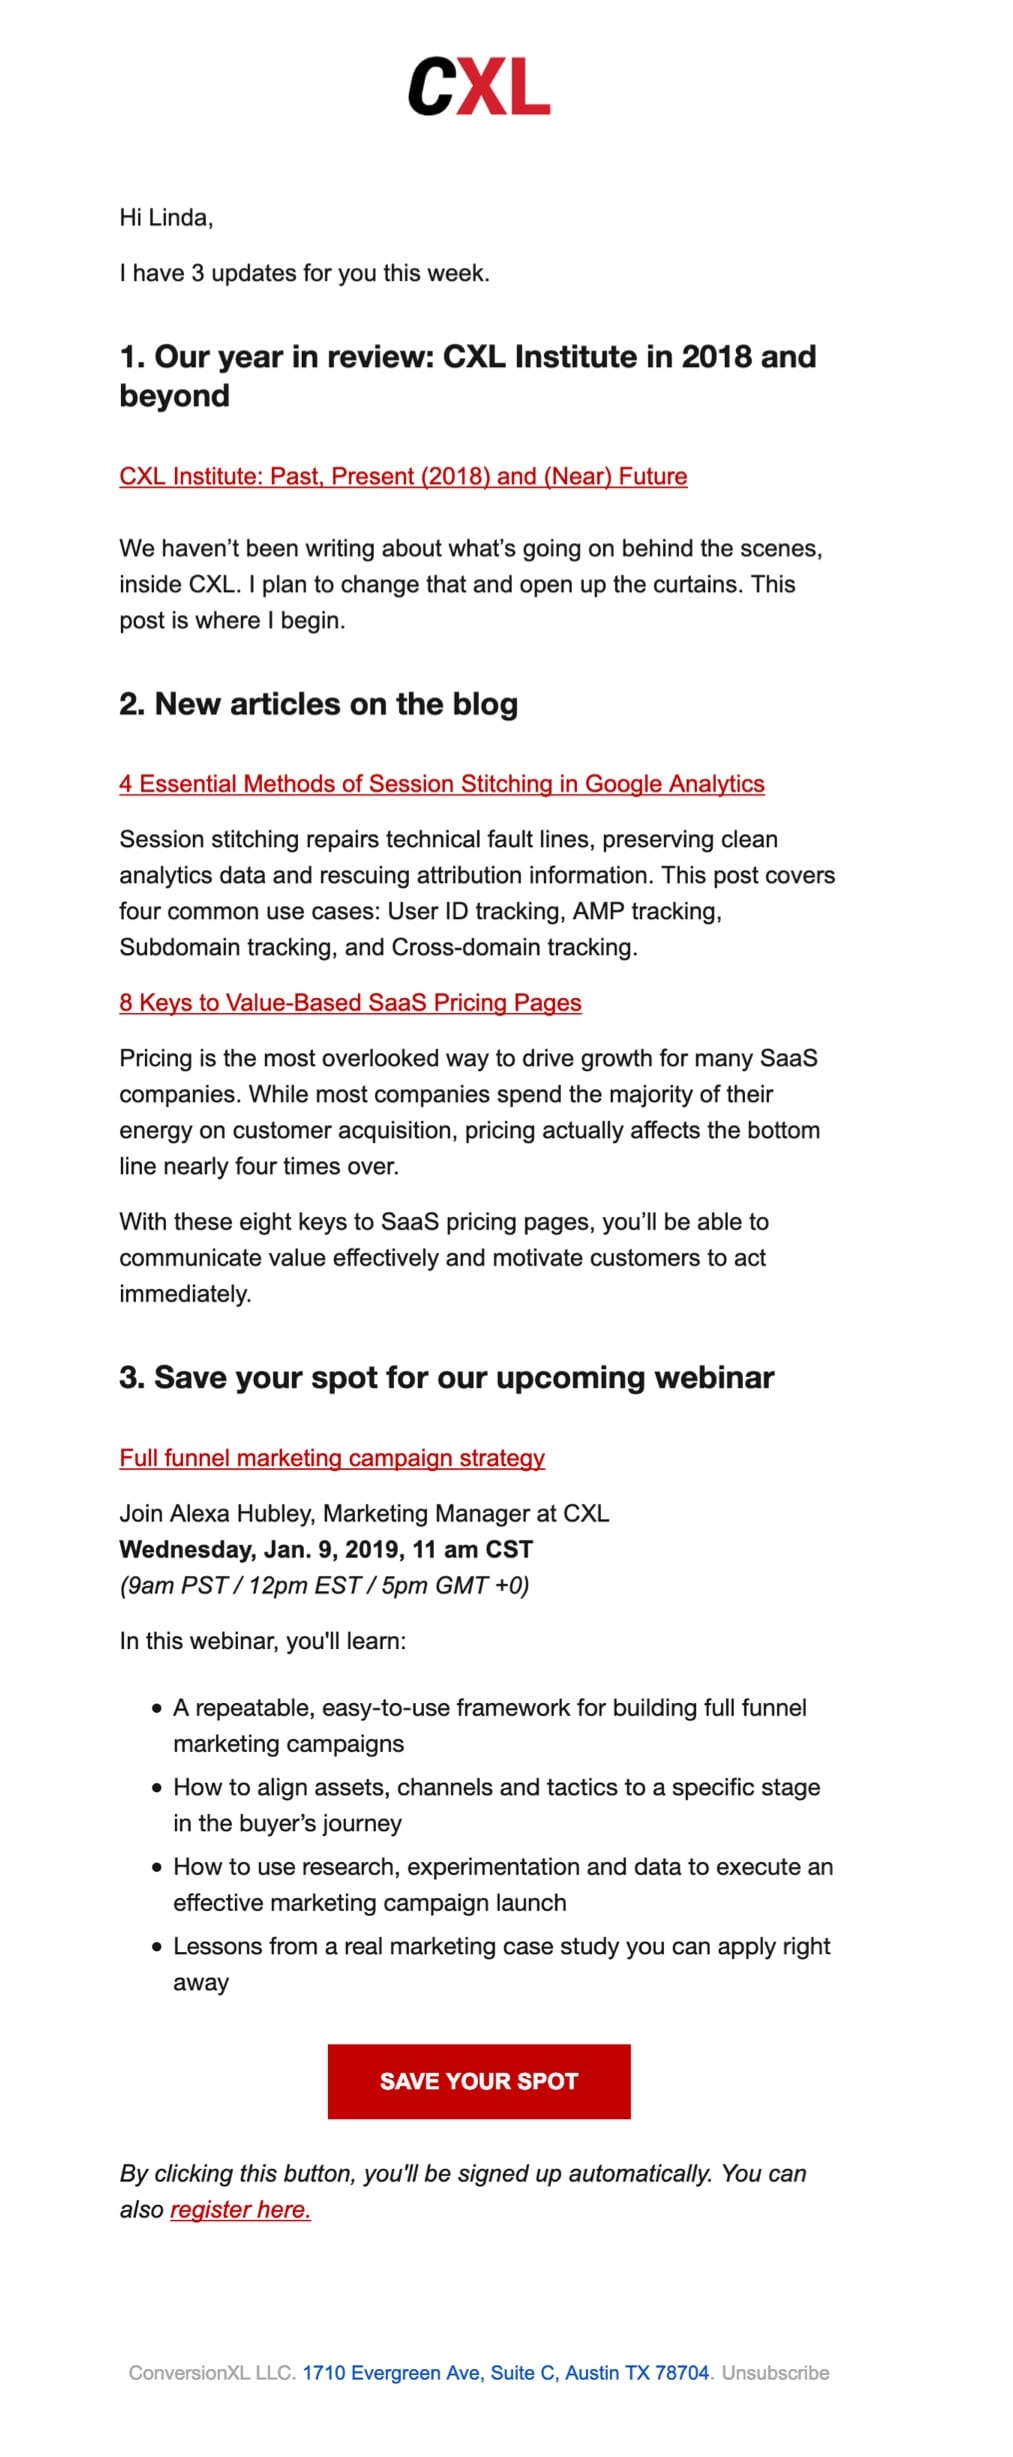 promotional email example conversionXL (event announcement)